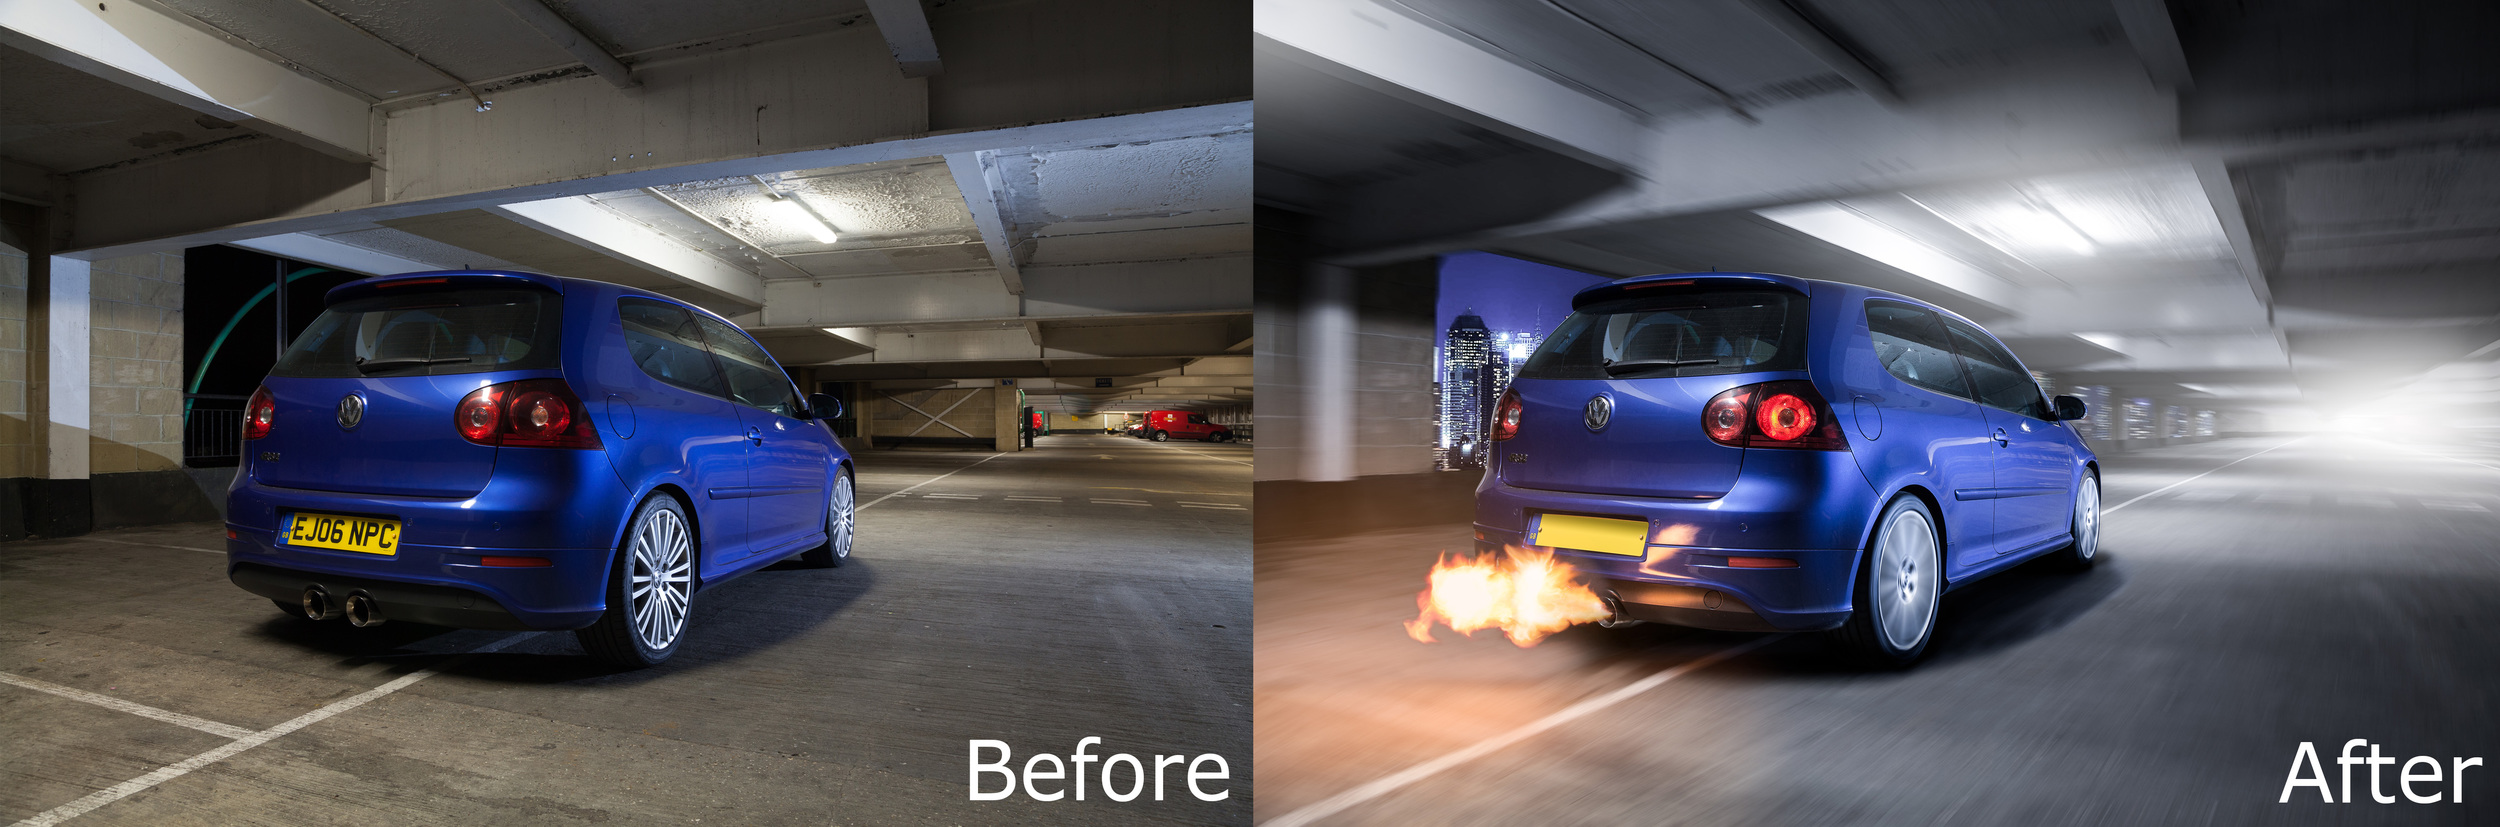 Before And After Car Photography